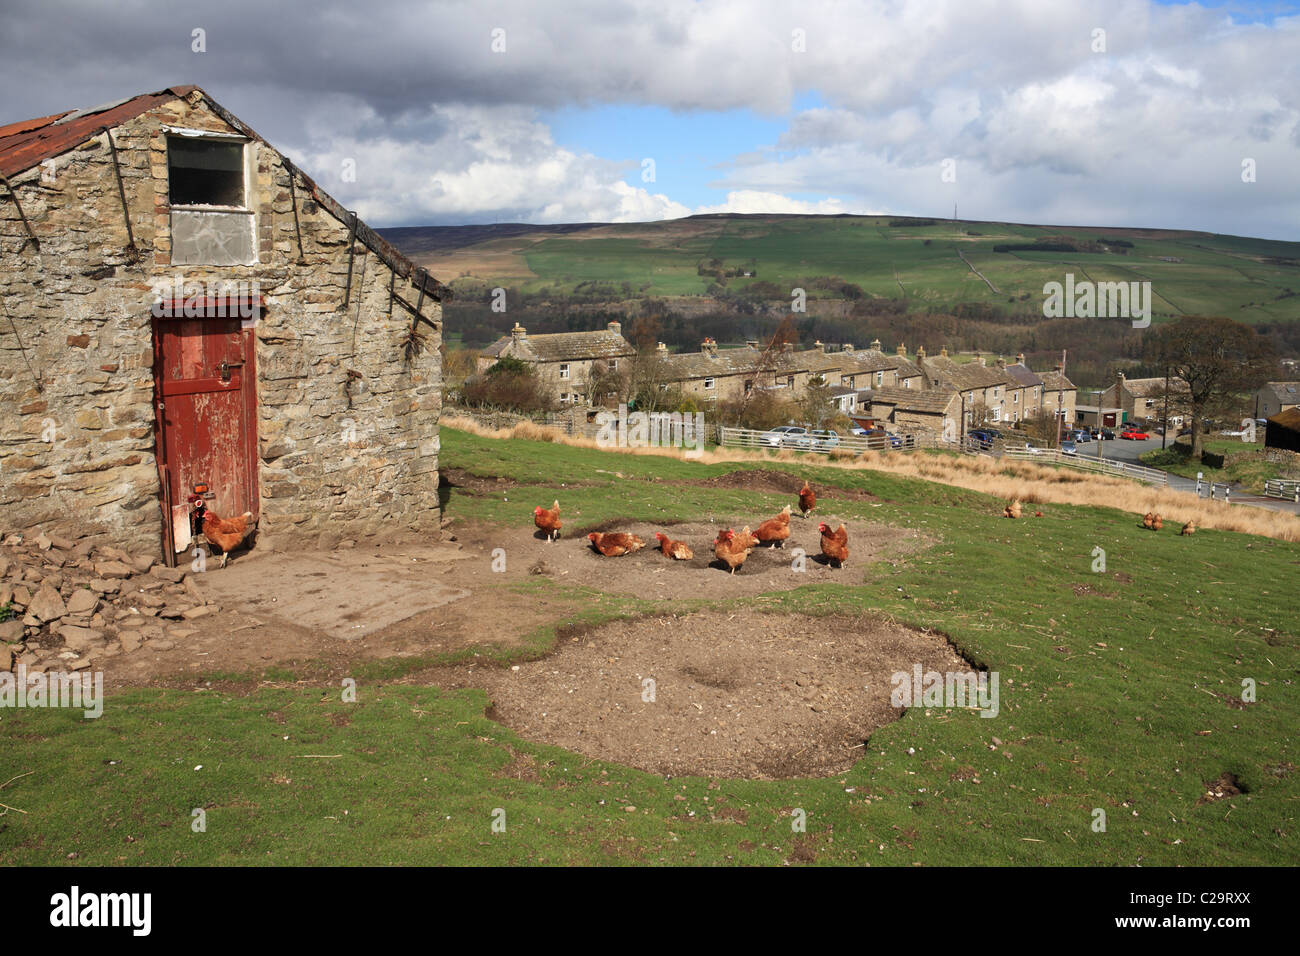 Free range hens at Hill End near Frosterley, Weardale, north east England, UK - Stock Image